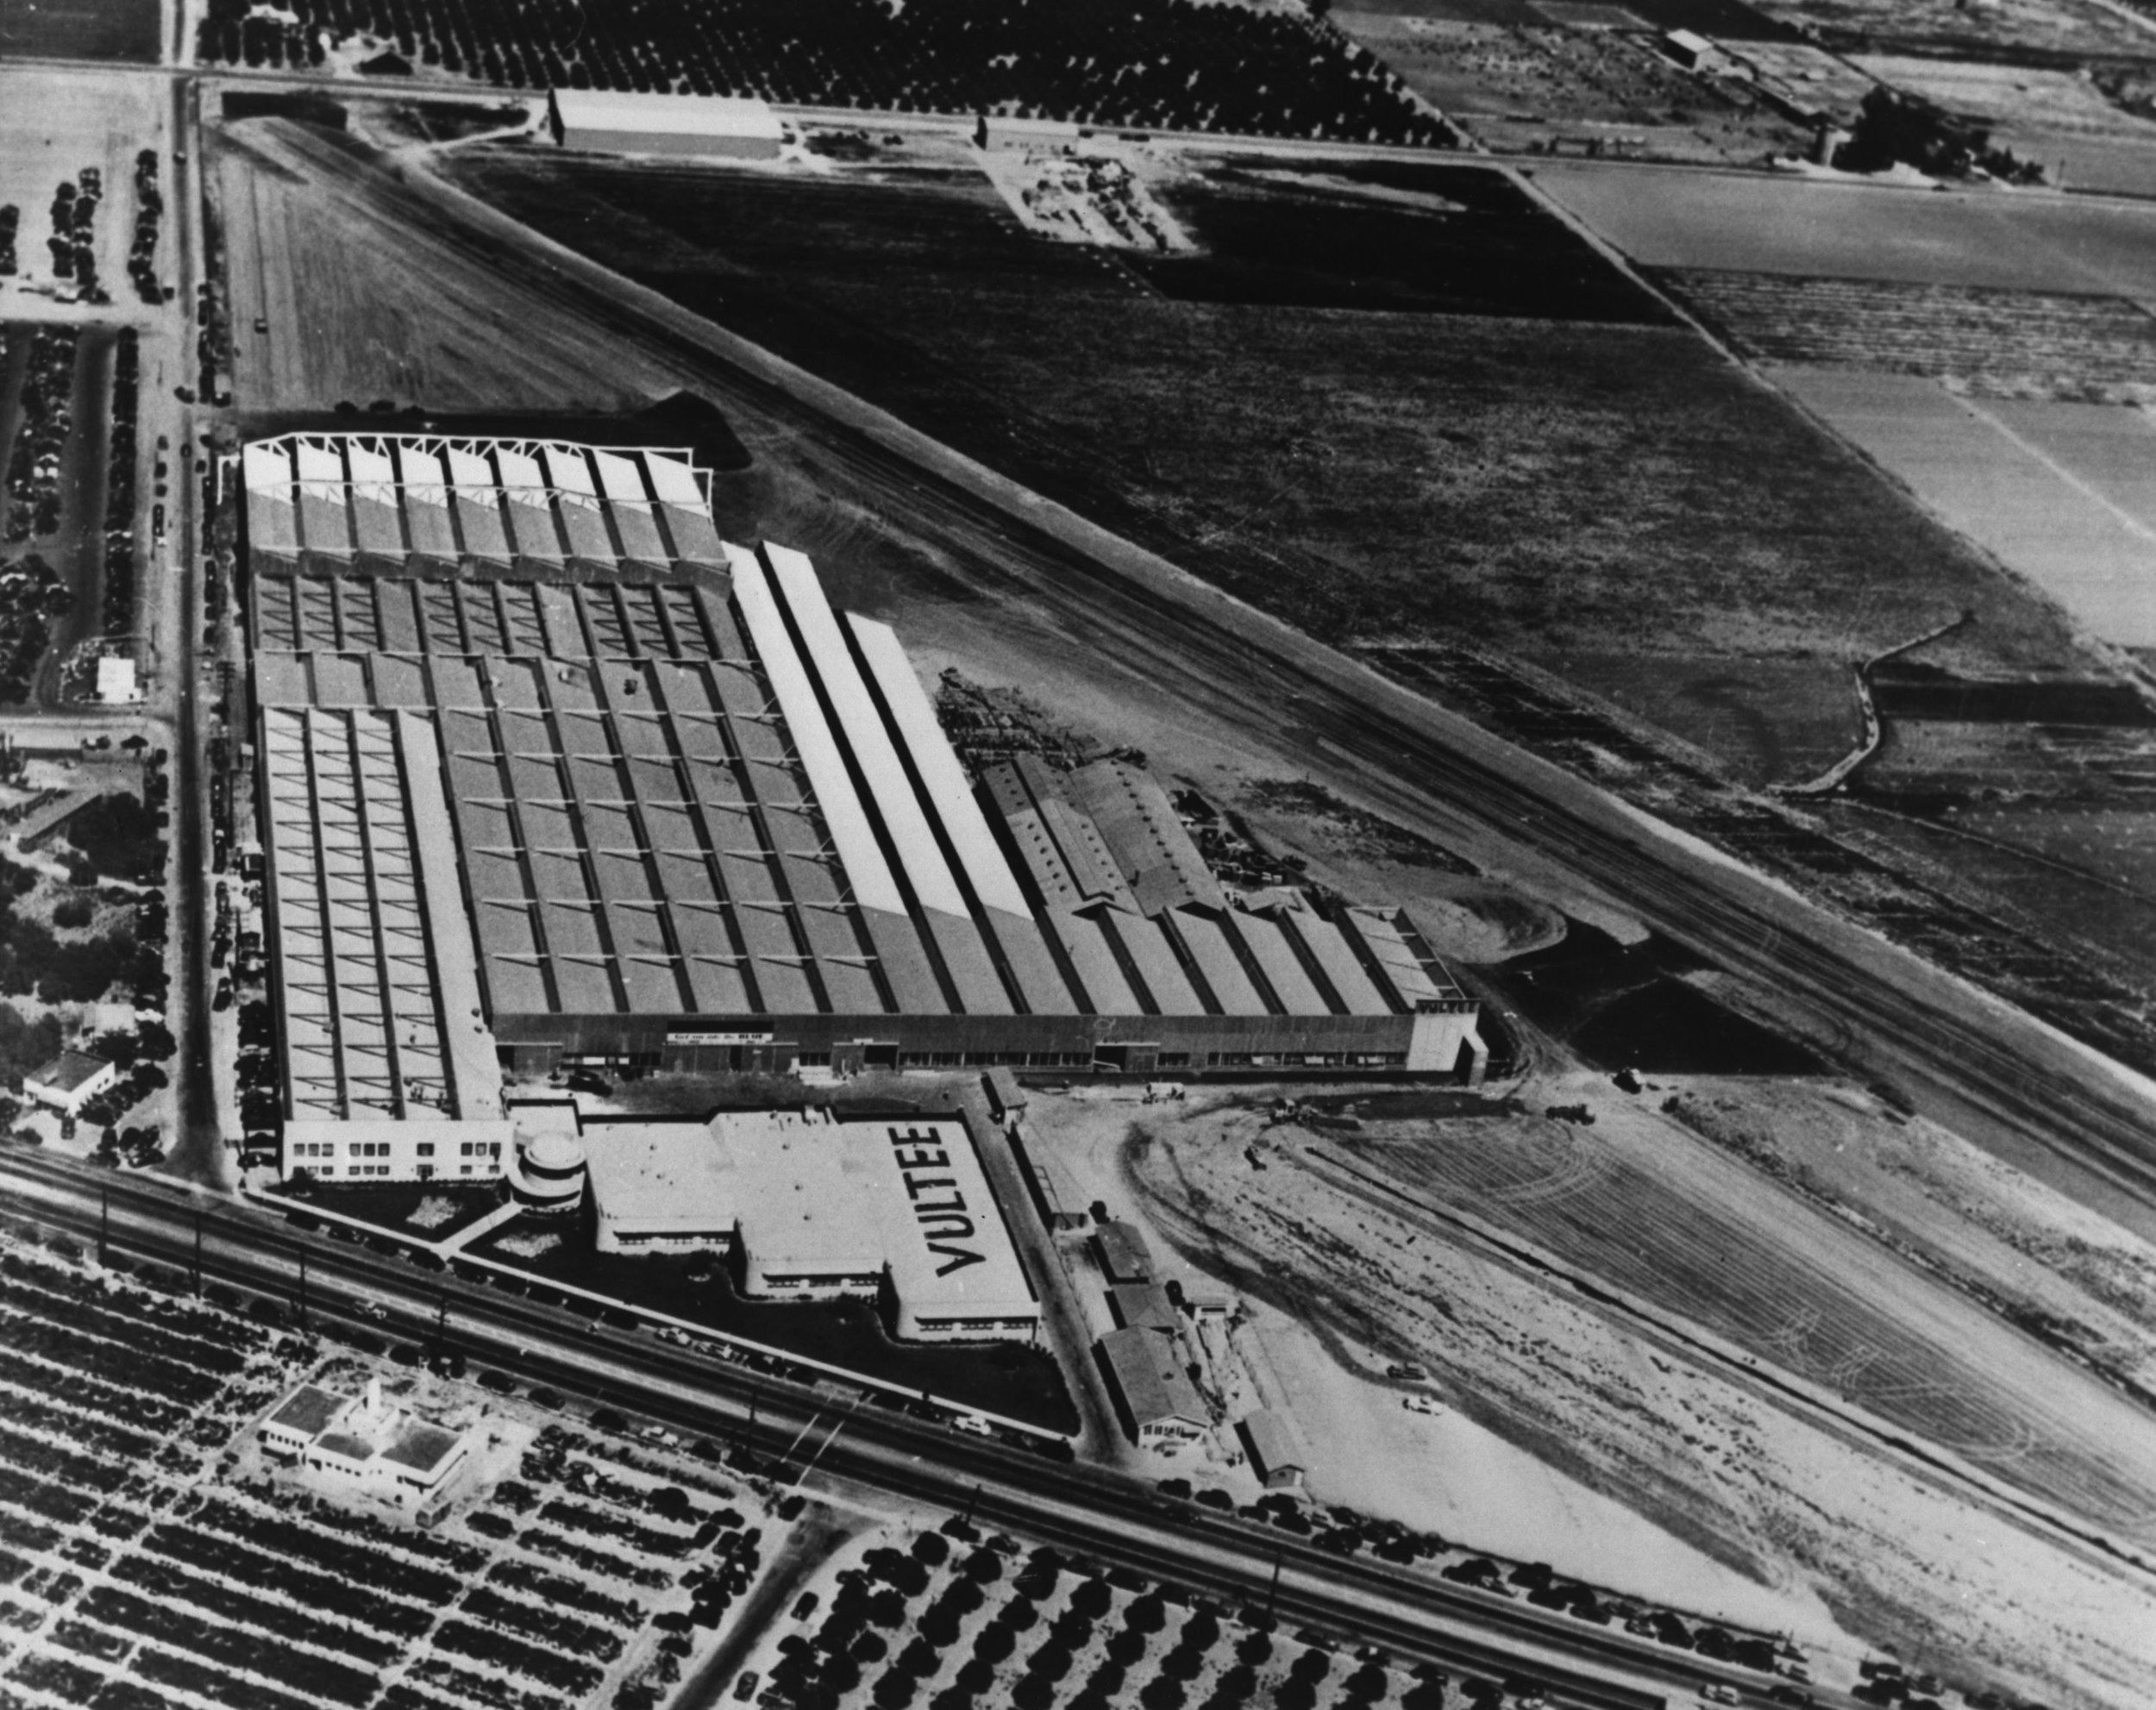 Vultee Aircraft Plant in Downey, CA